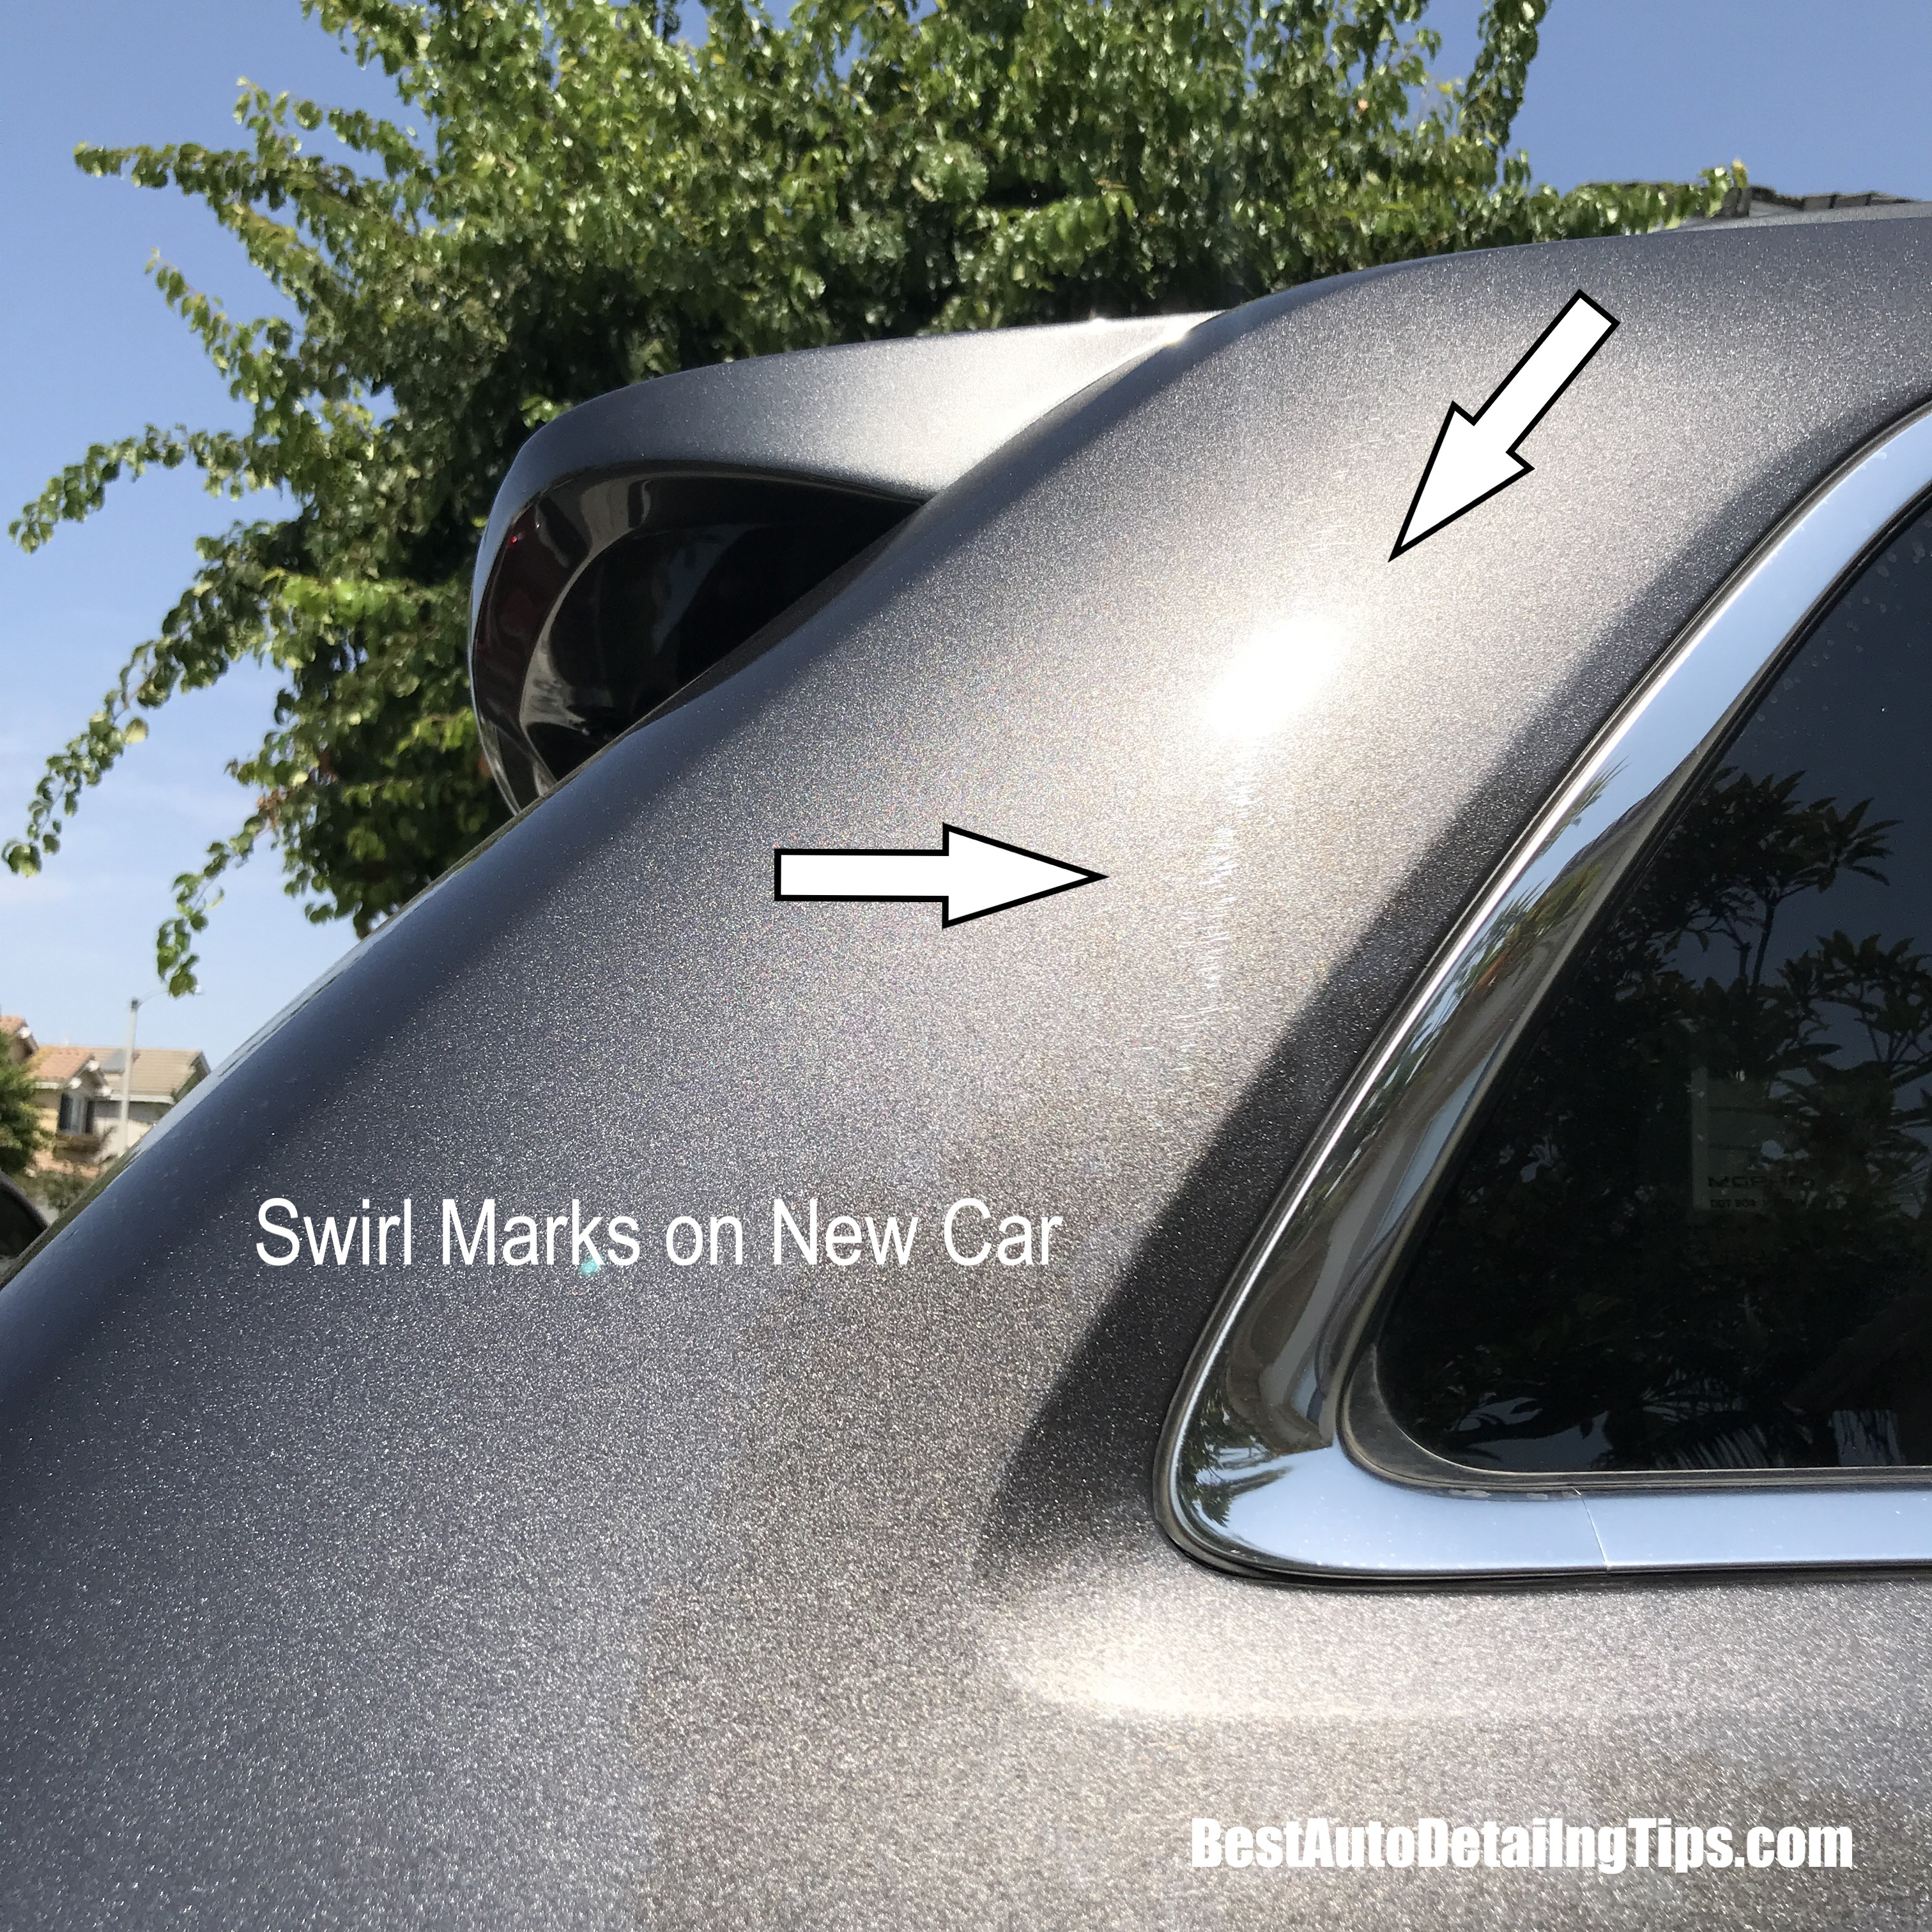 what are swirl marks on new car